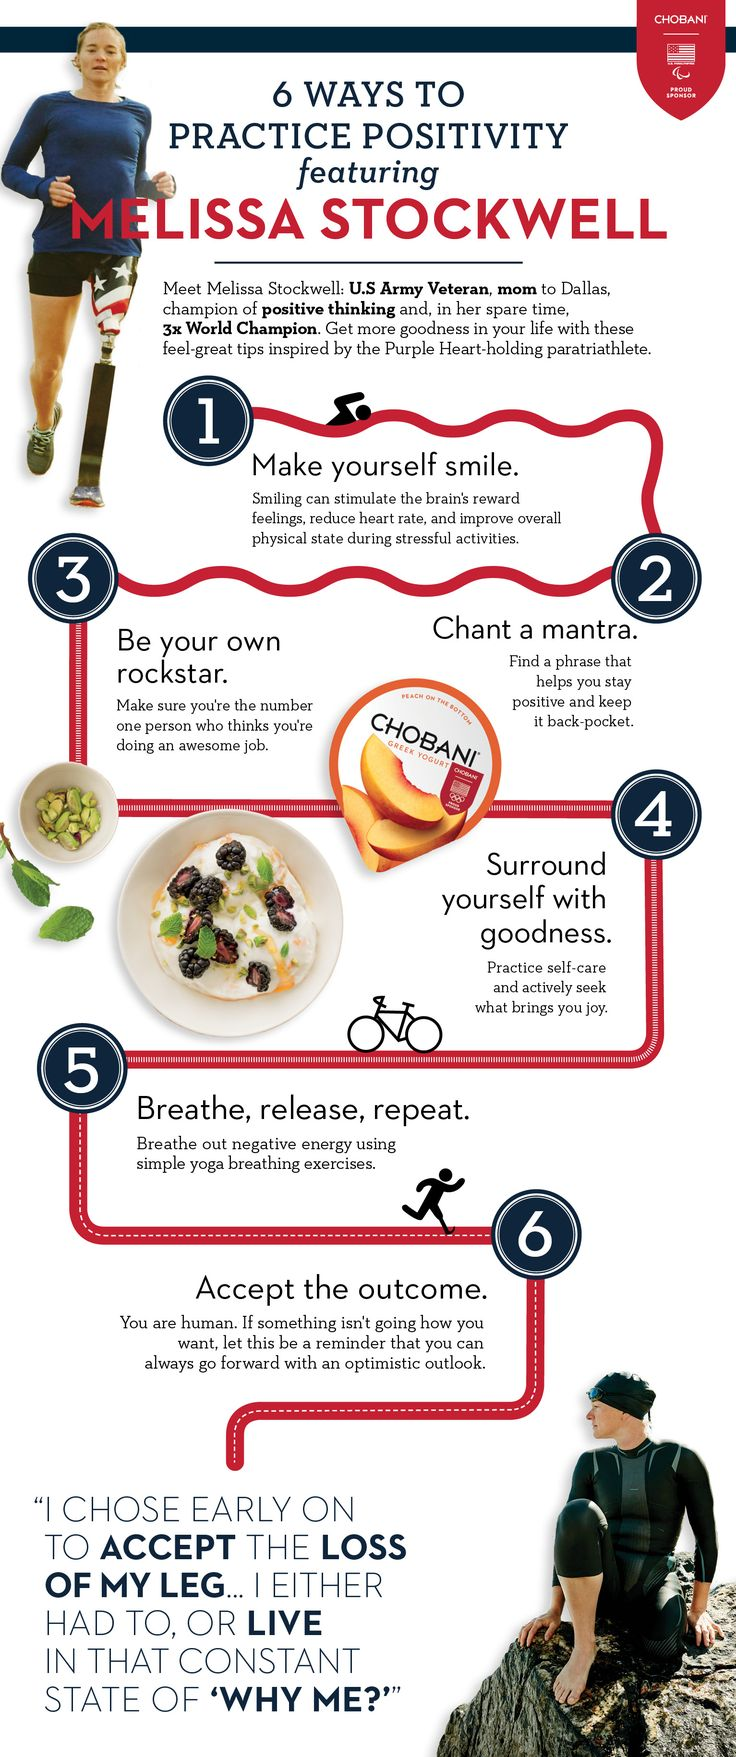 6 Ways to Practicing Positivity with Melissa Stockwell. Get more goodness in your life with these feel-great tips inspired by the Purple Heart-holding paratriathlete.